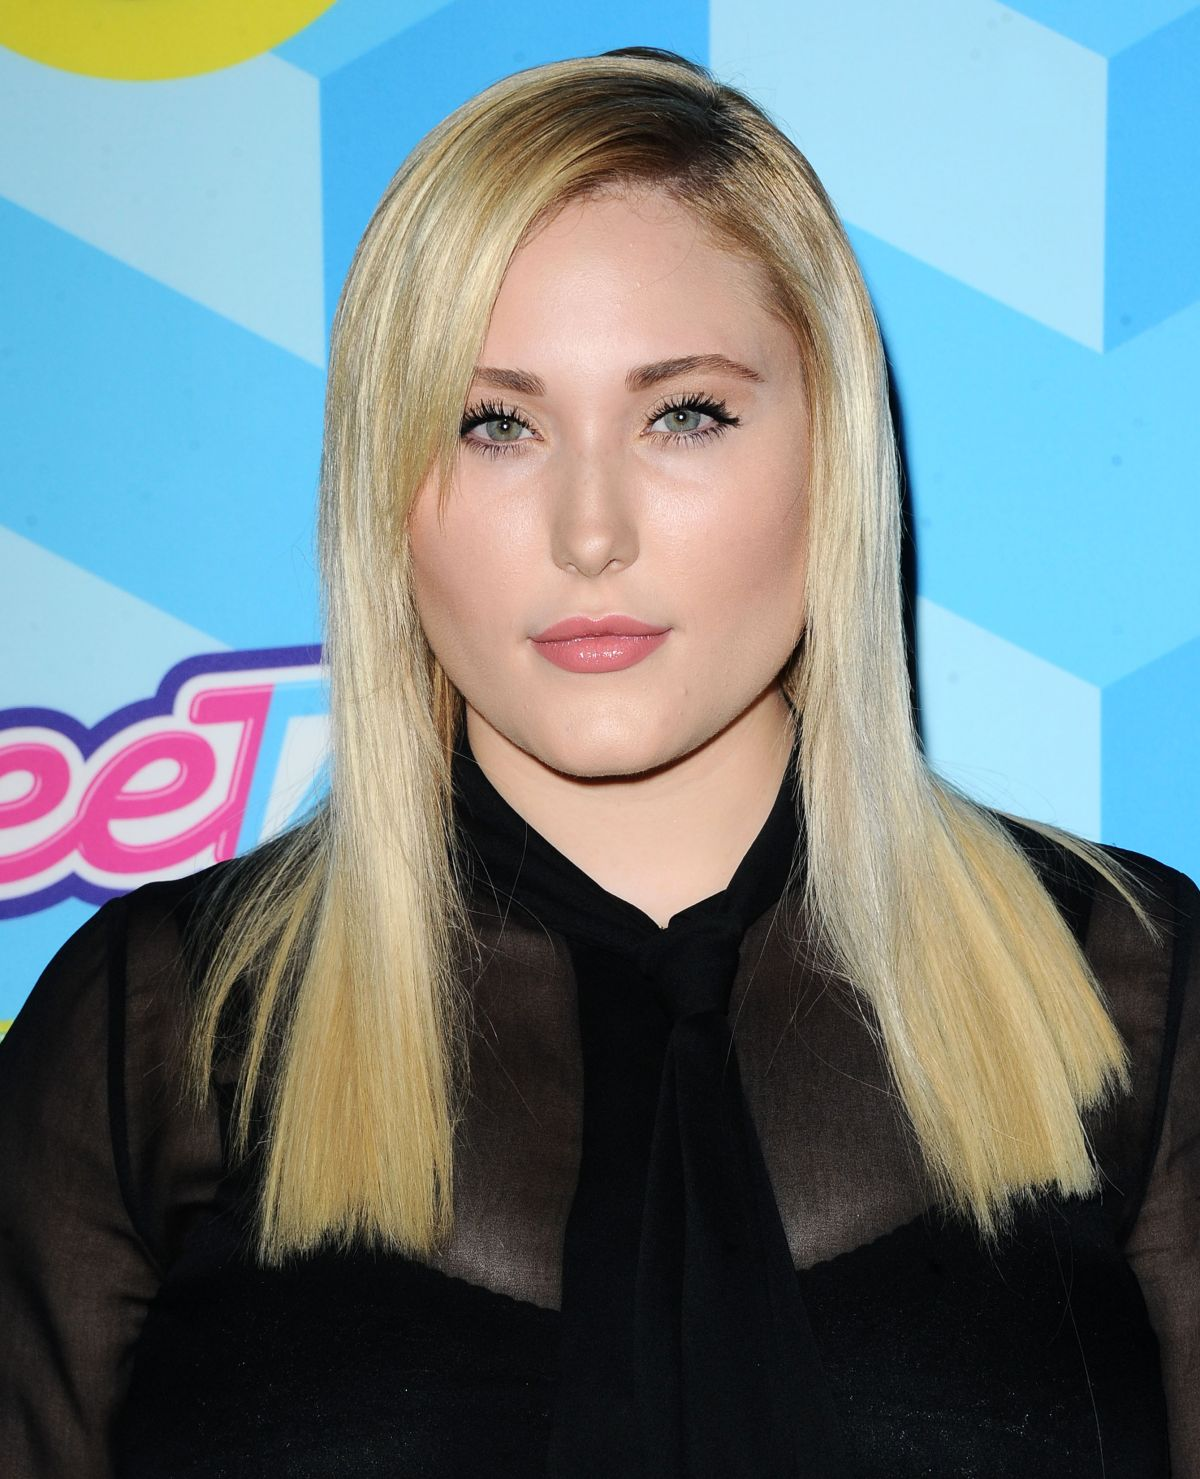 HAYLEY HASSELHOFF at Just Jared's Summer Bash Pool Party in Los Angeles